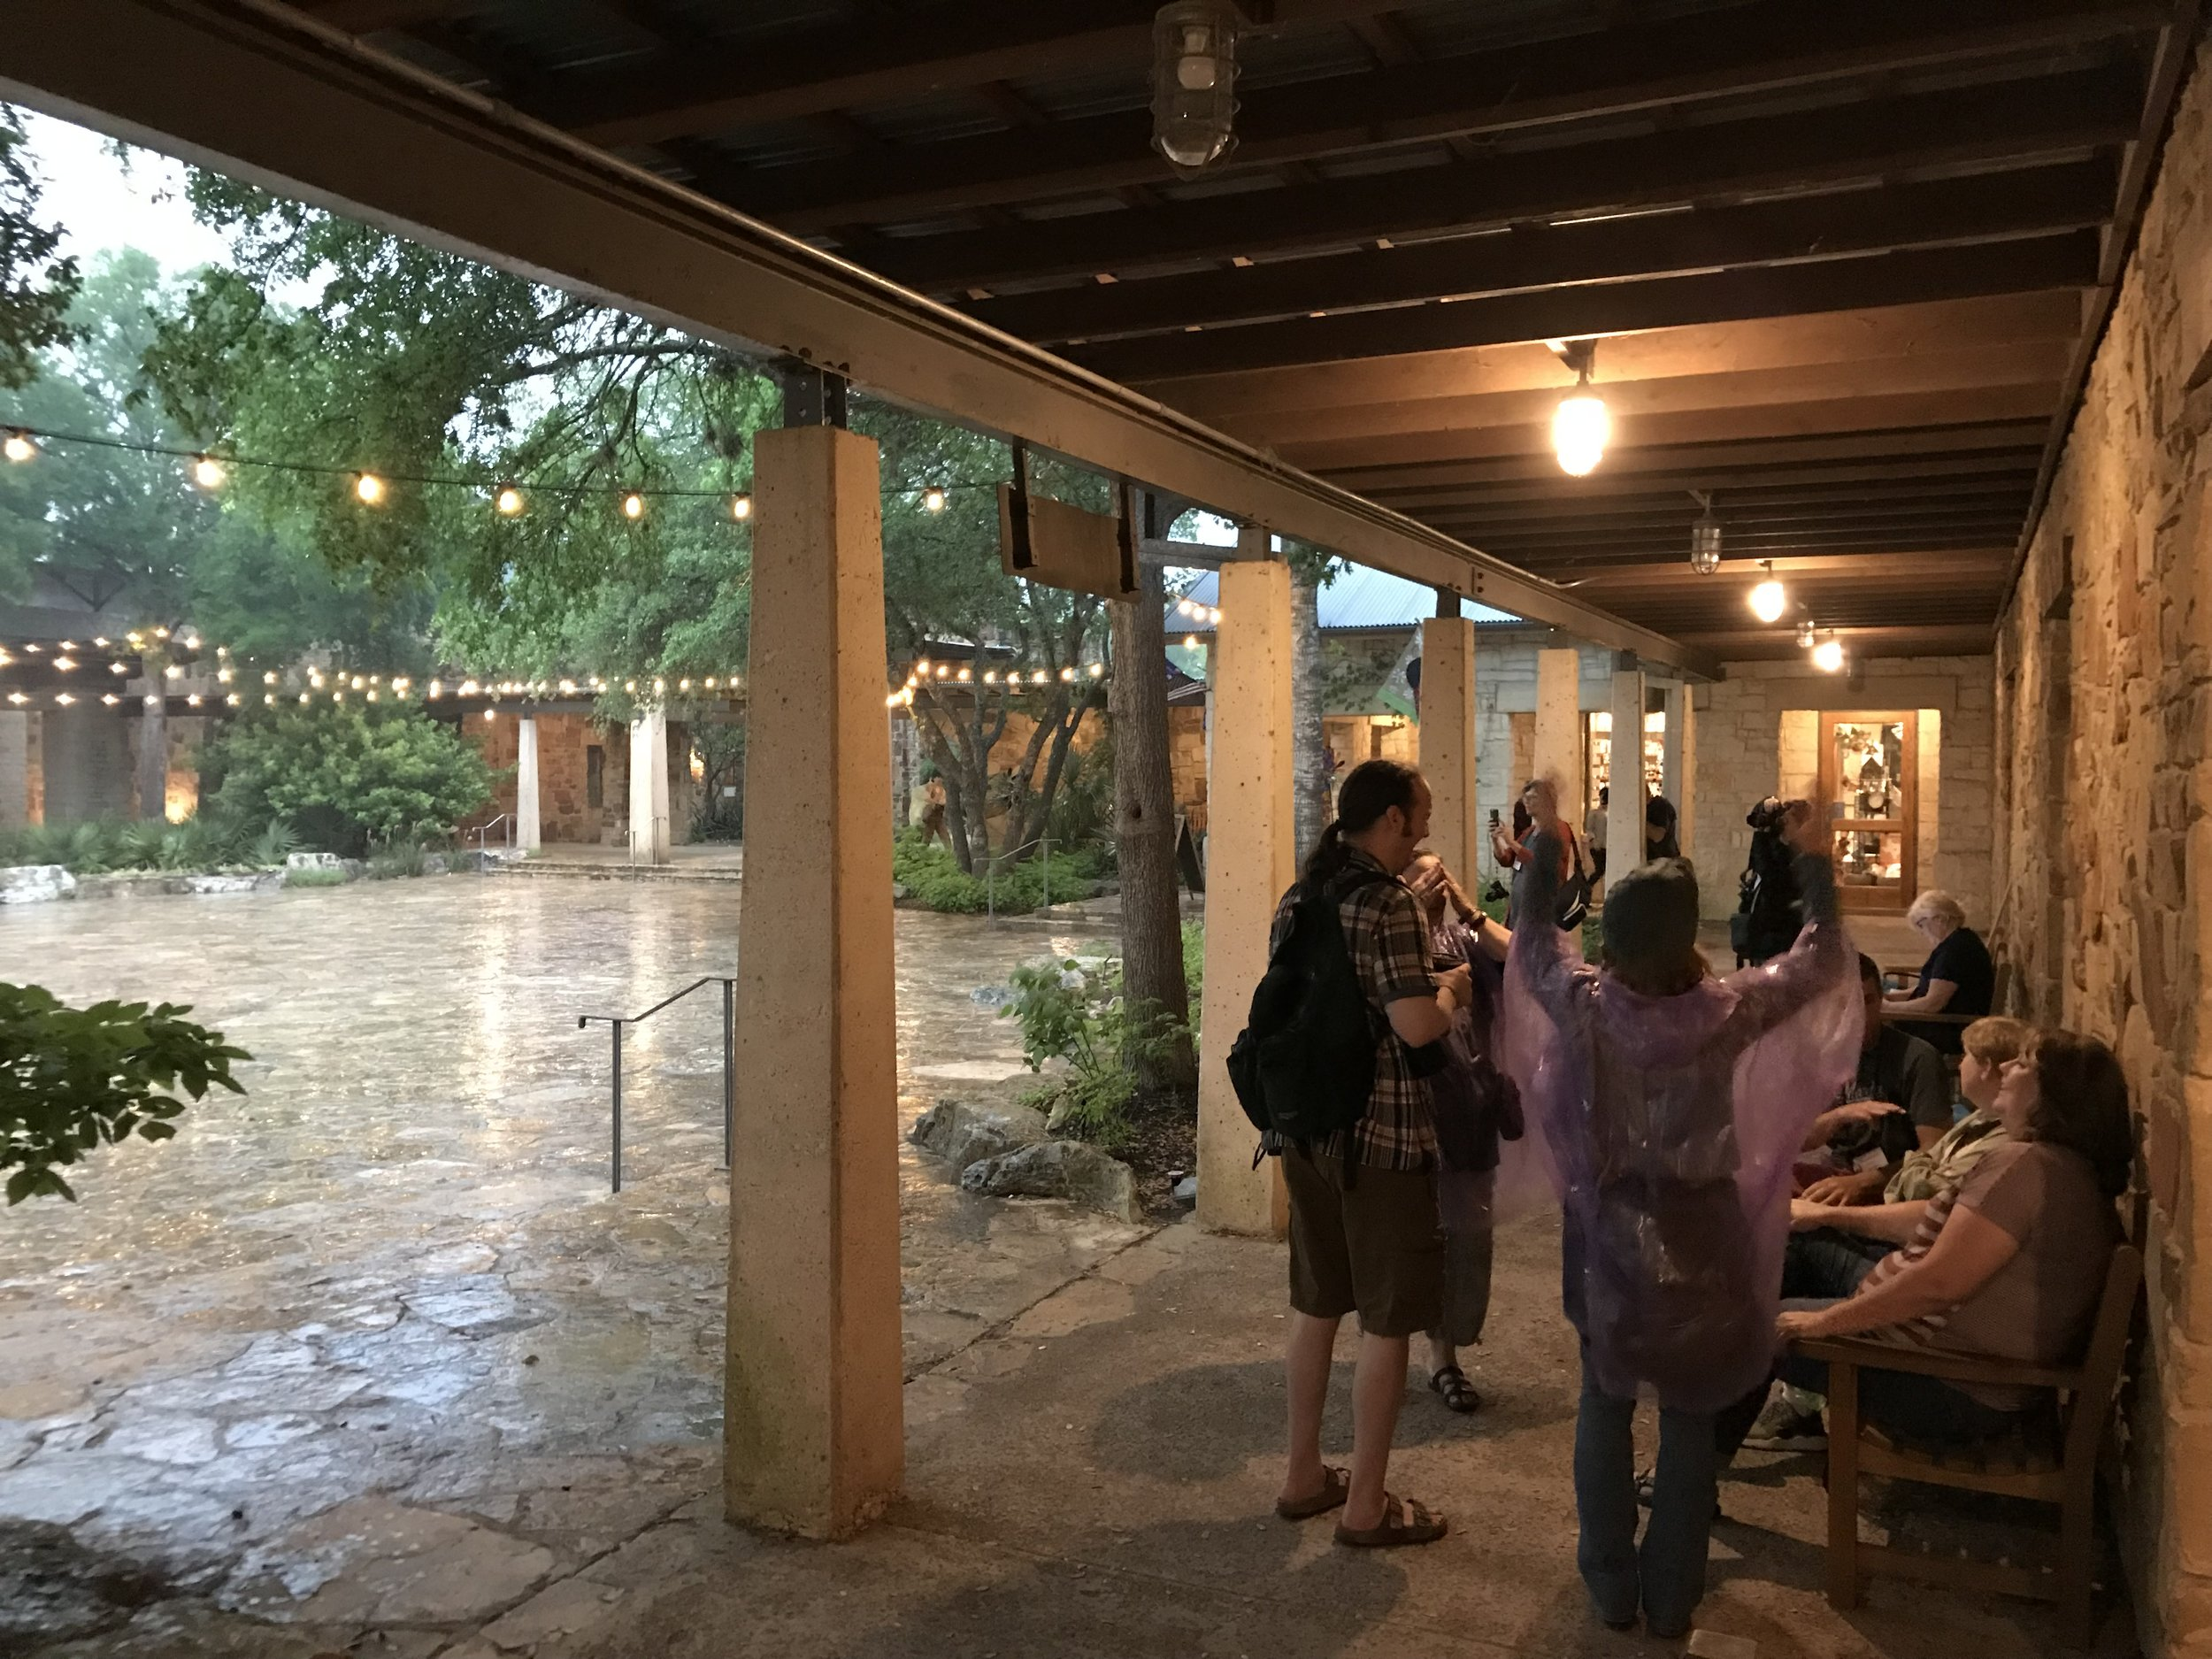 Our group seeking shelter from the rain, under the central courtyard's porticos.